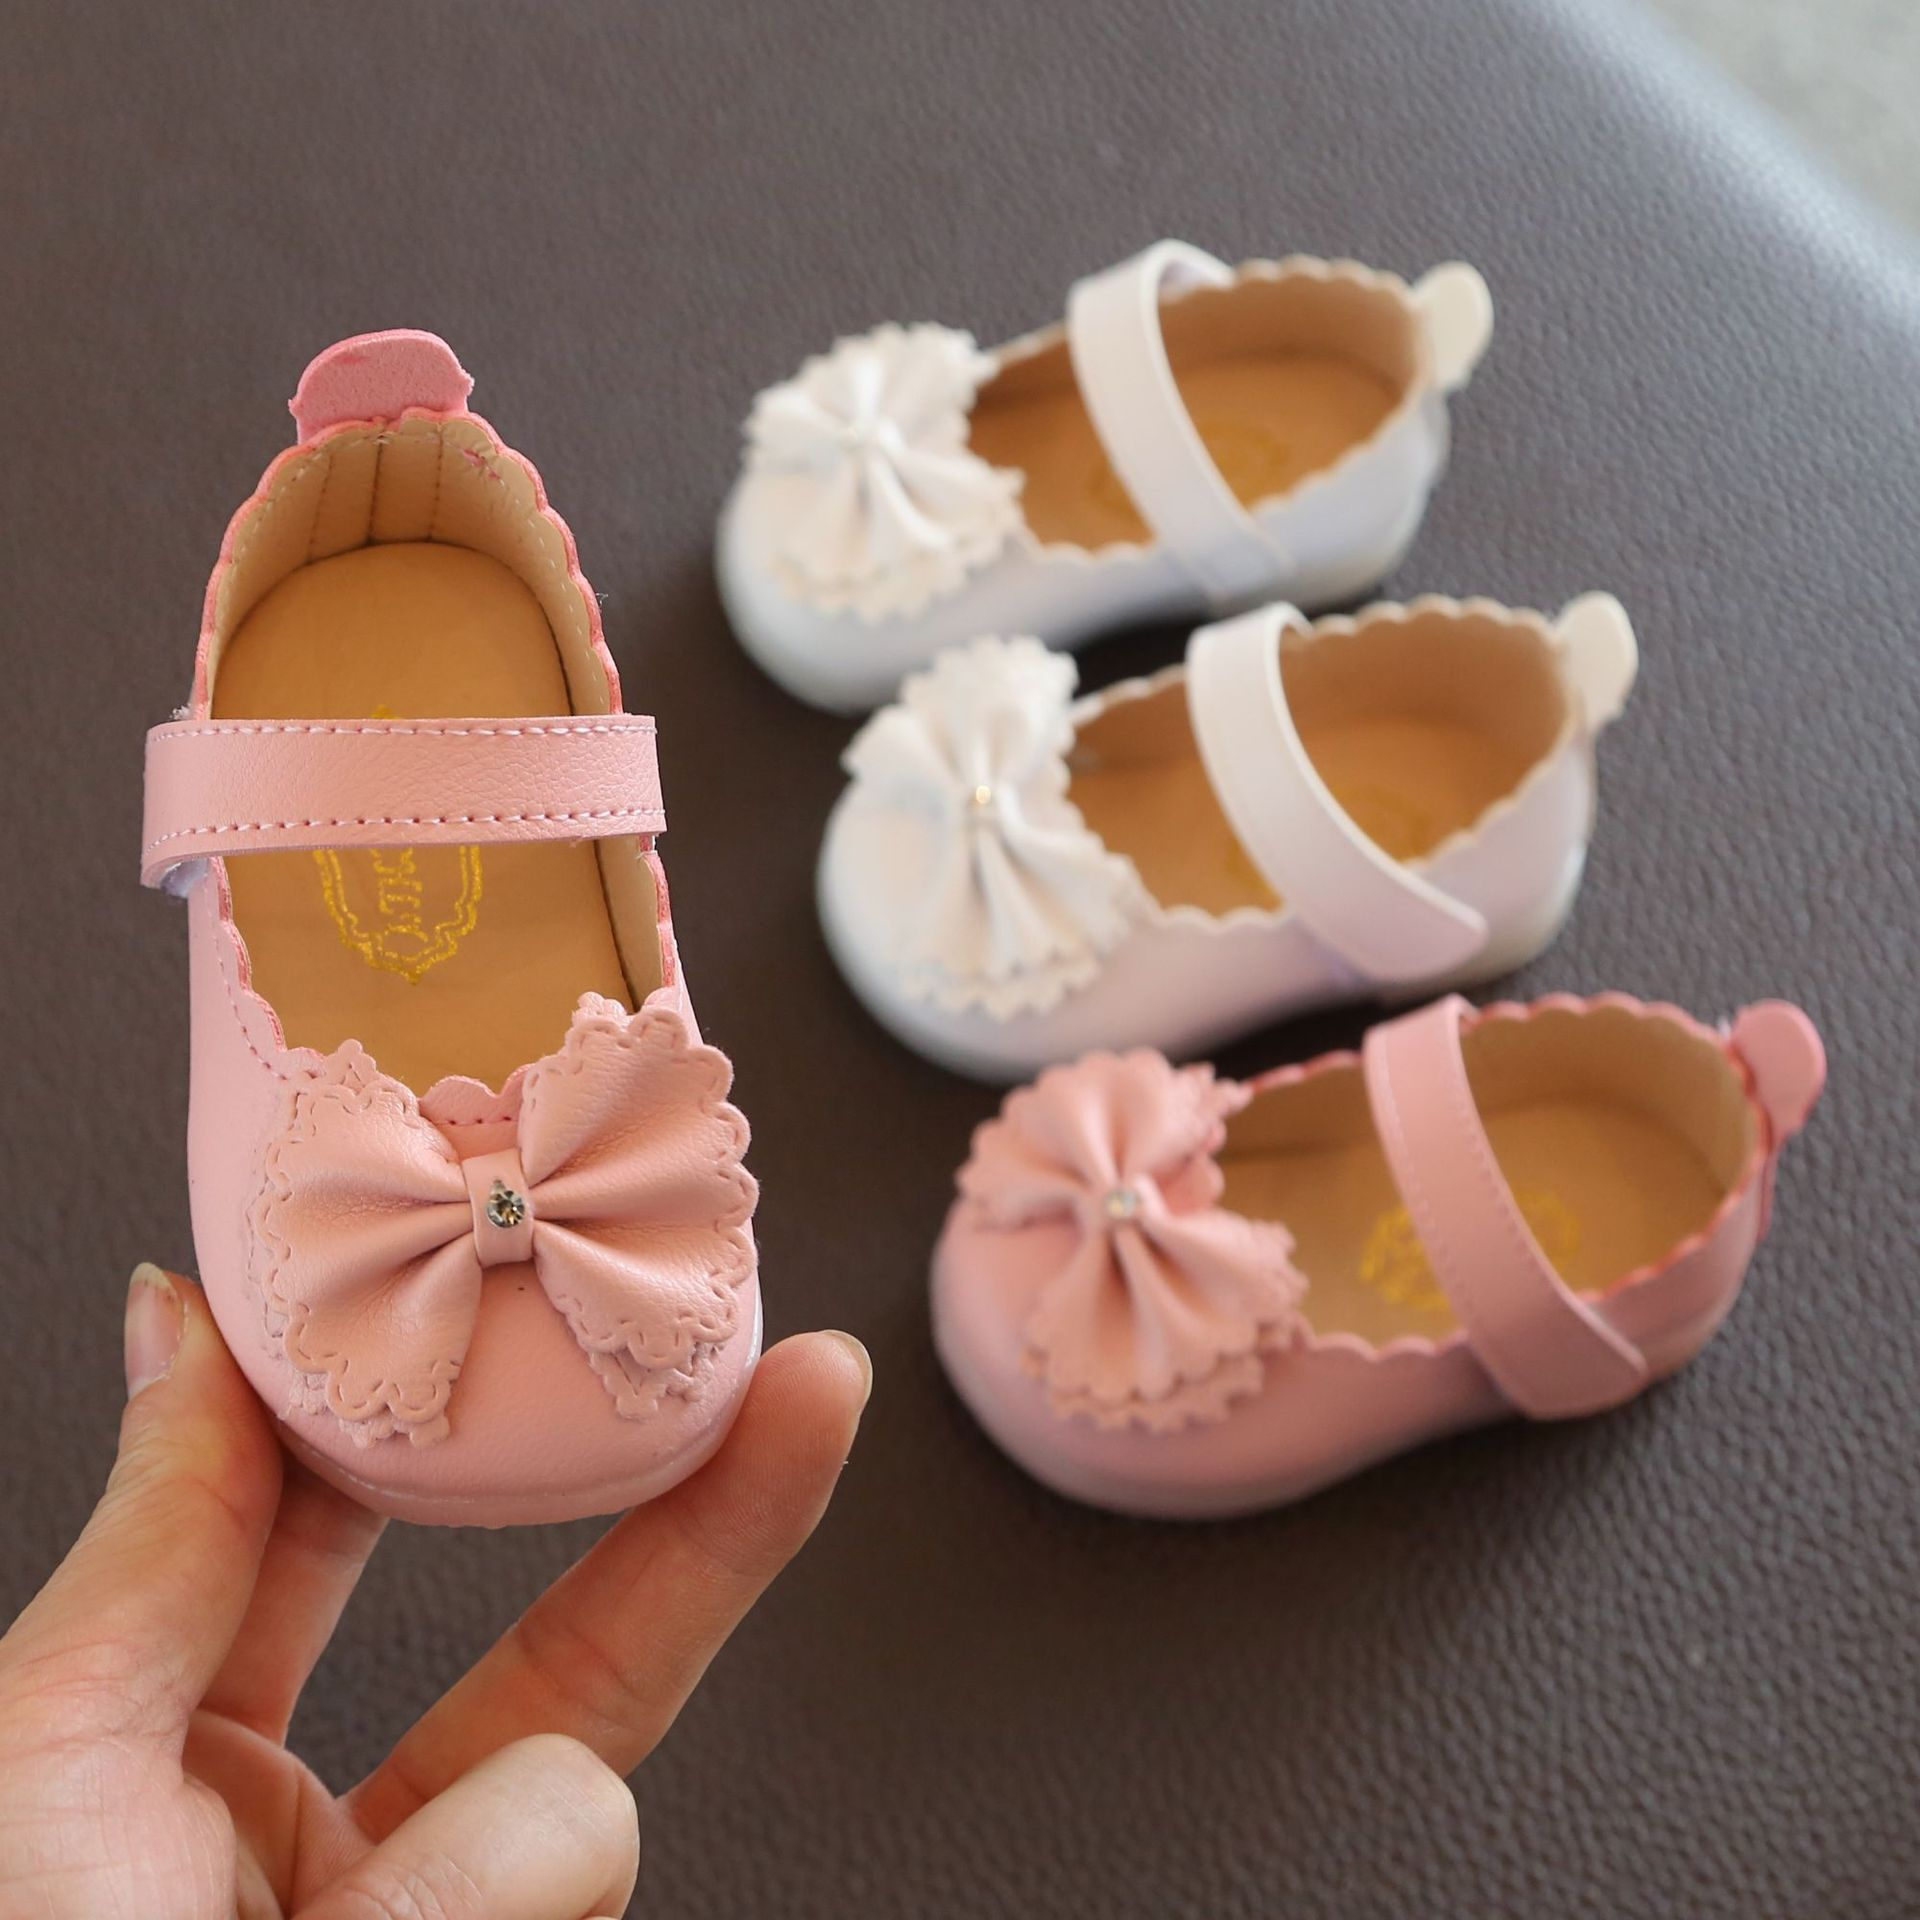 Newest Summer Kids Shoes 2020 Fashion Leahter Sweet Newborn Sandals For Girls Toddler Baby Breathable Crystal Infant Shoe C12276